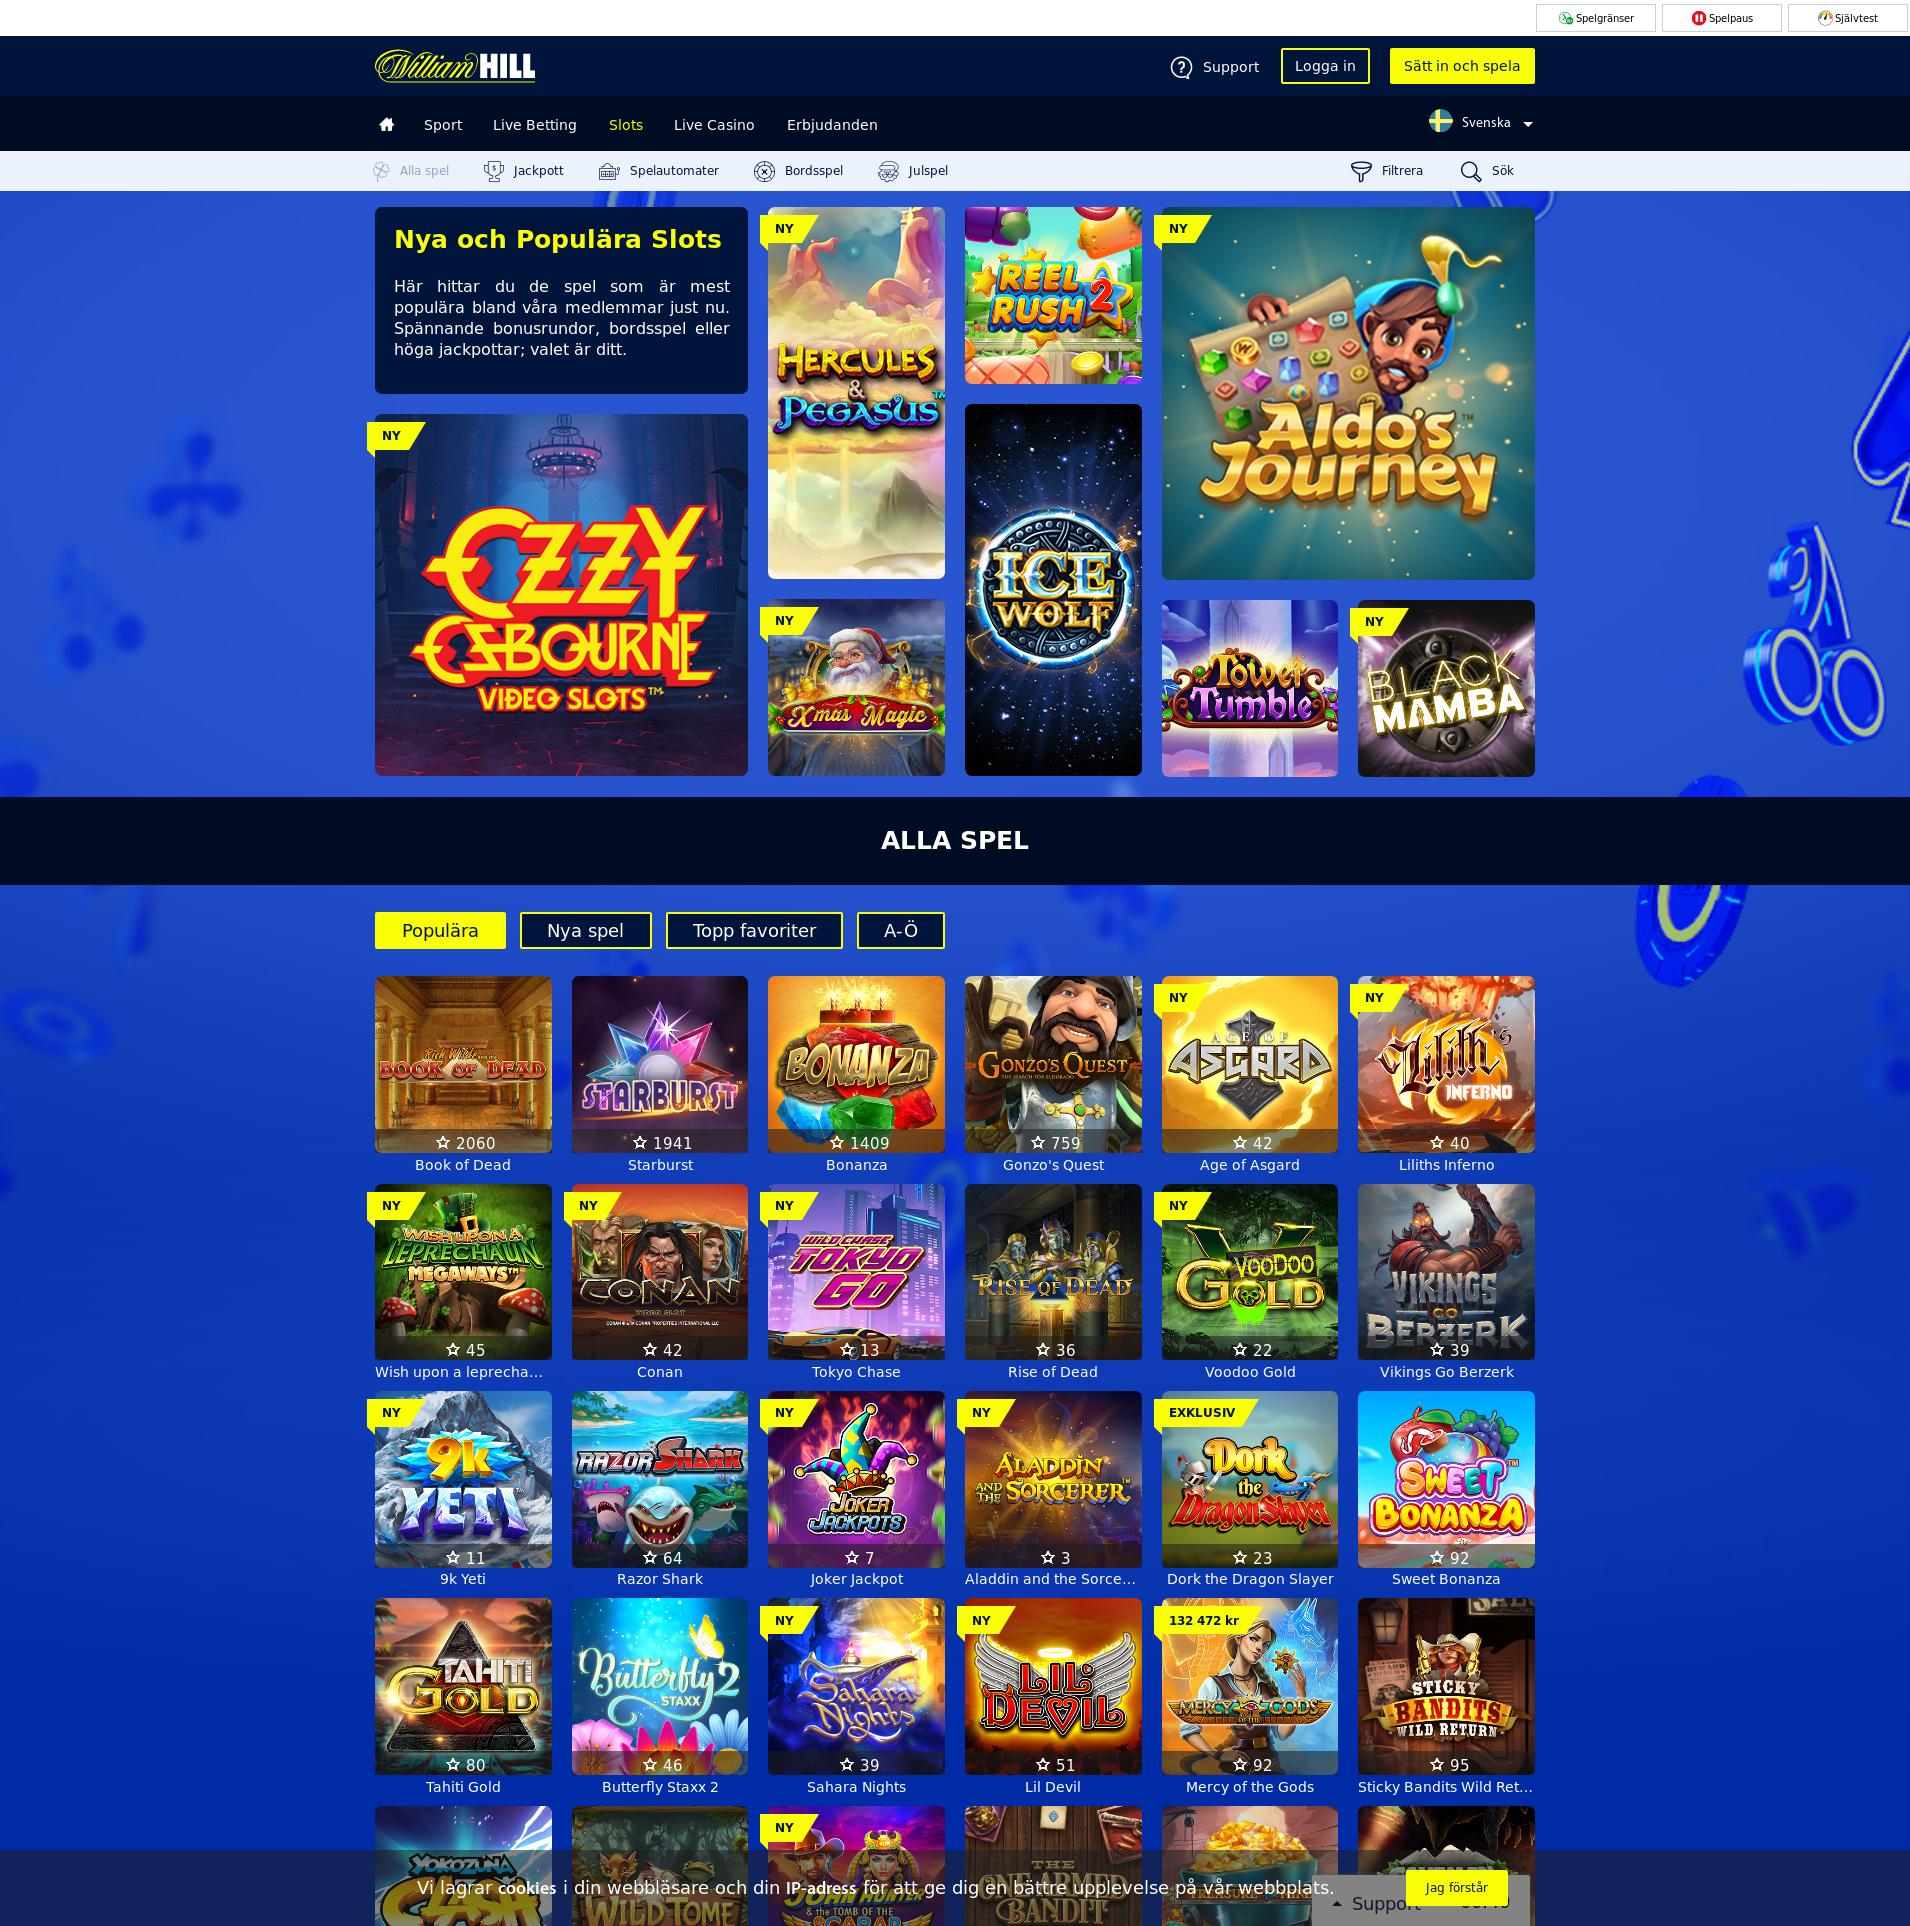 Casino screen Lobby 2019-12-12 for Sweden